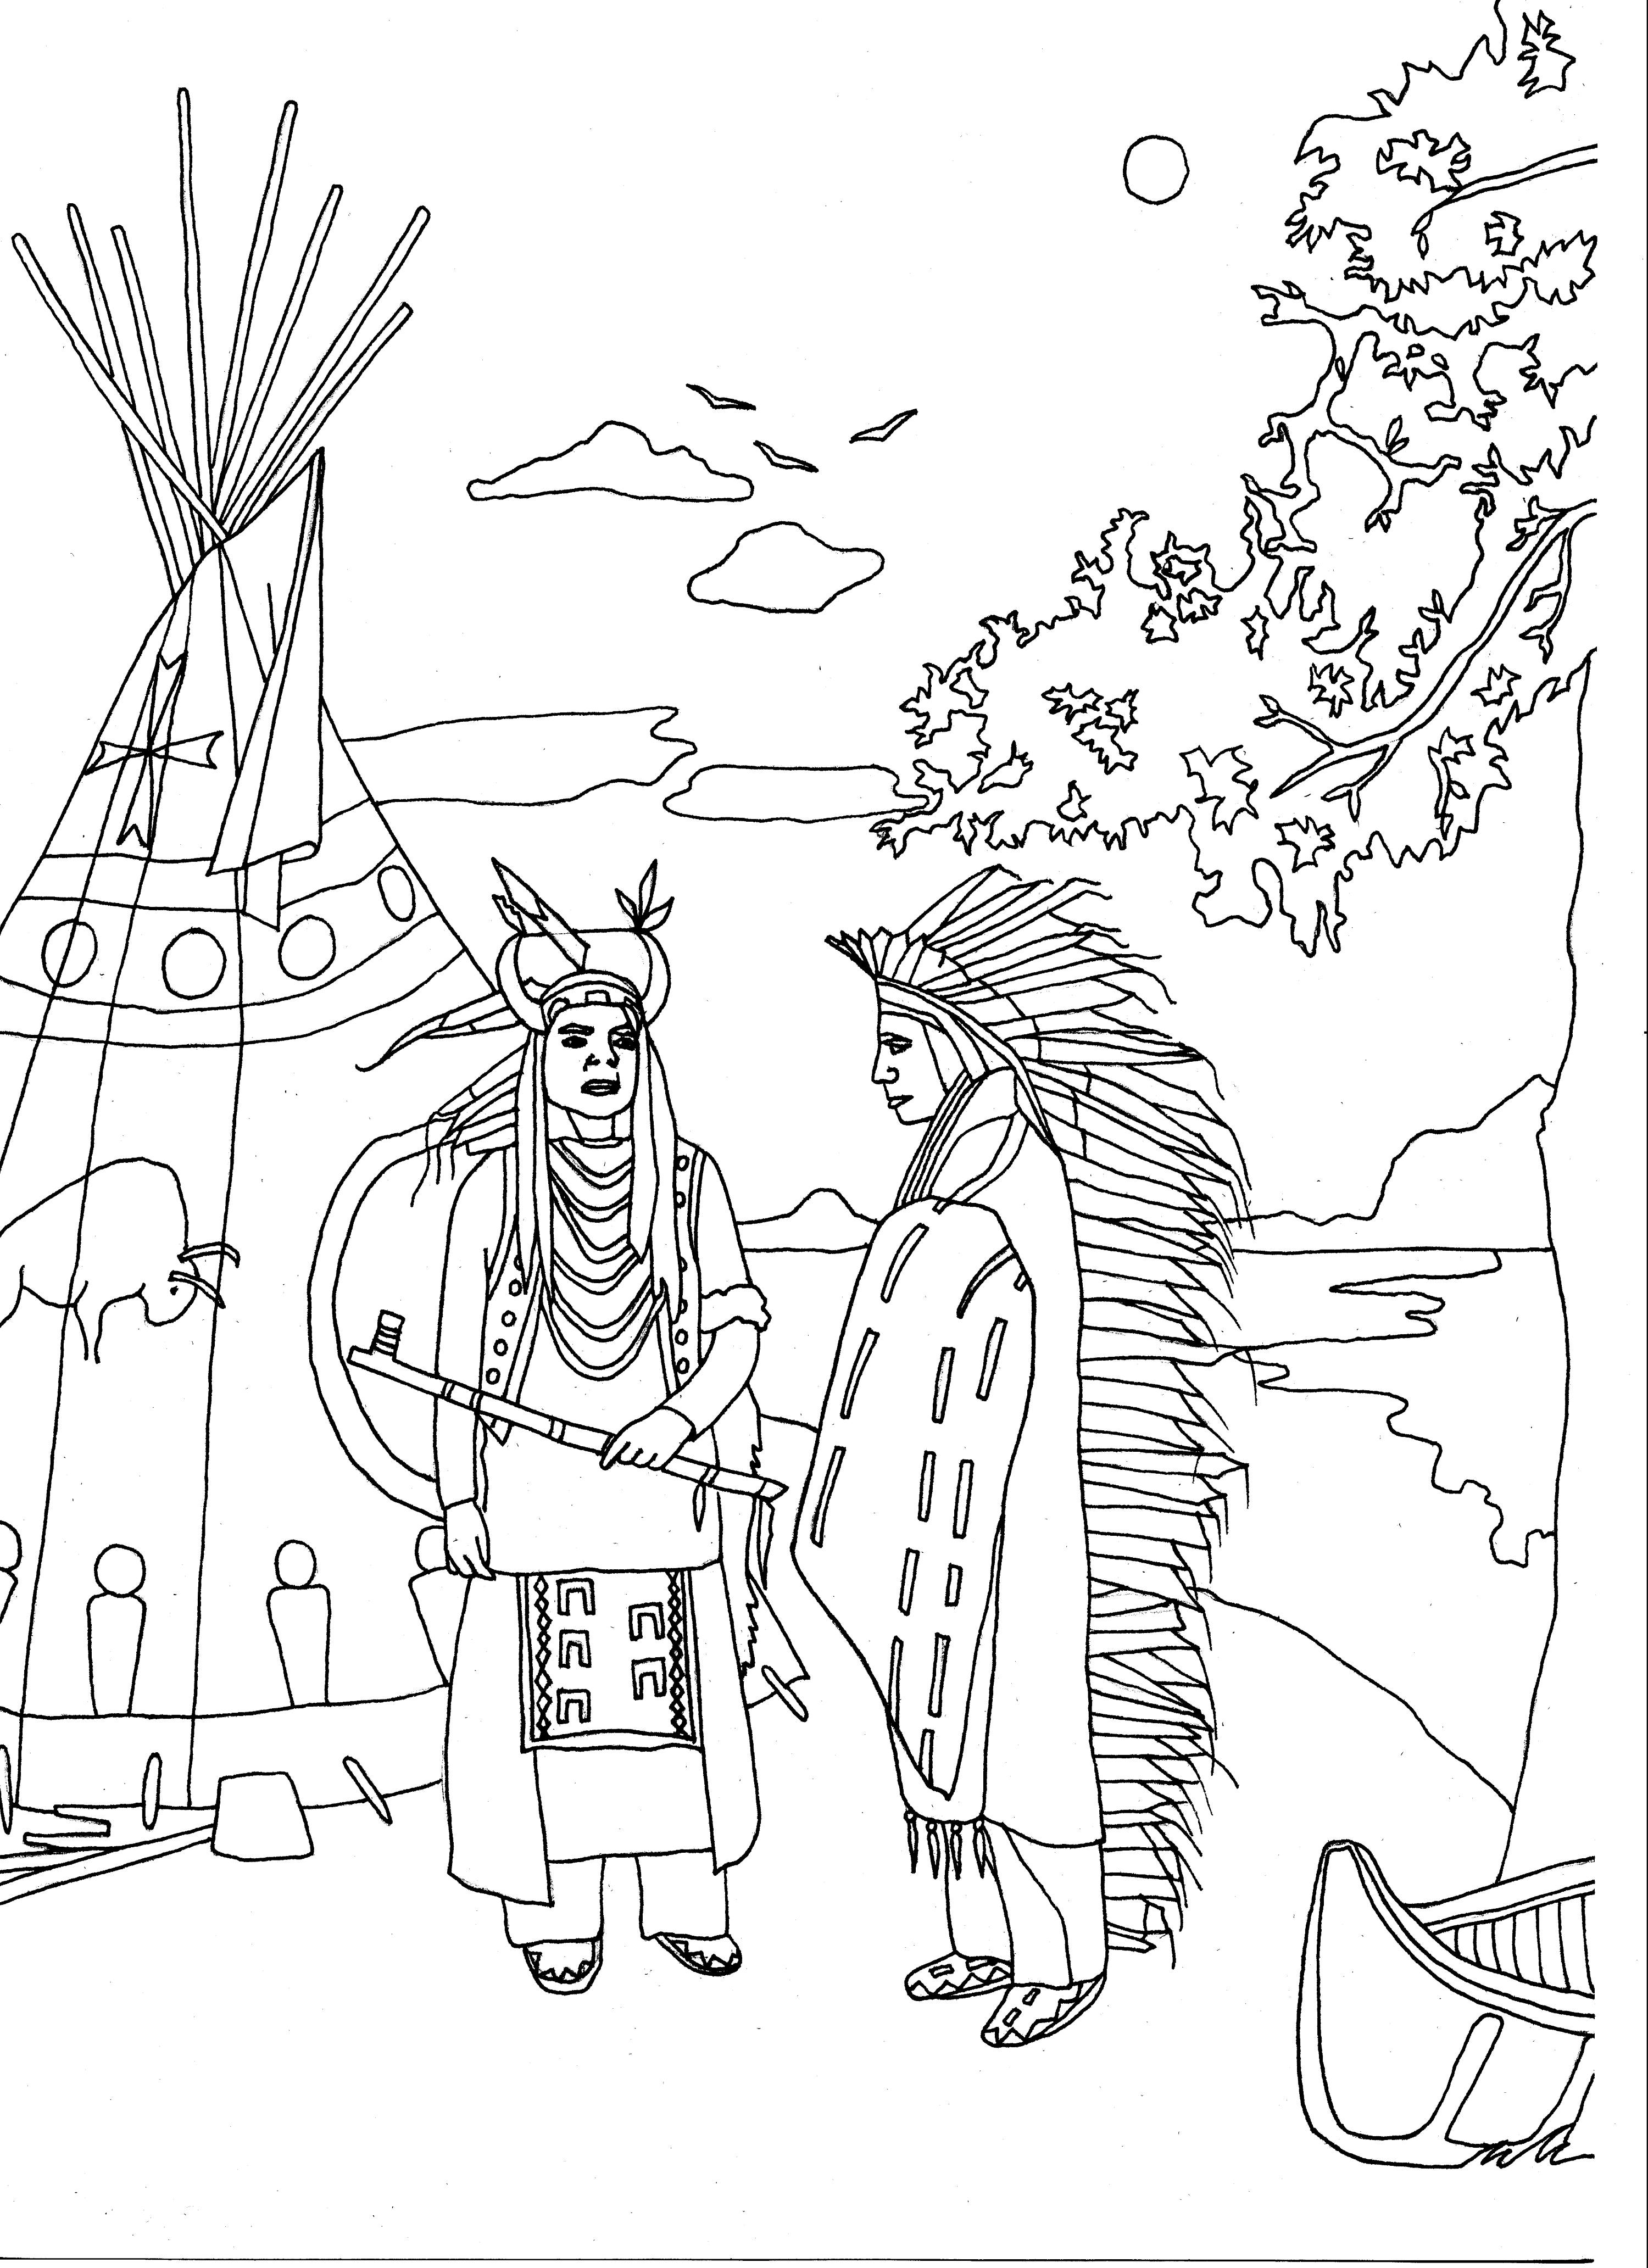 Exclusive coloring page of Two Native Americans in traditional dress in front of a tipi